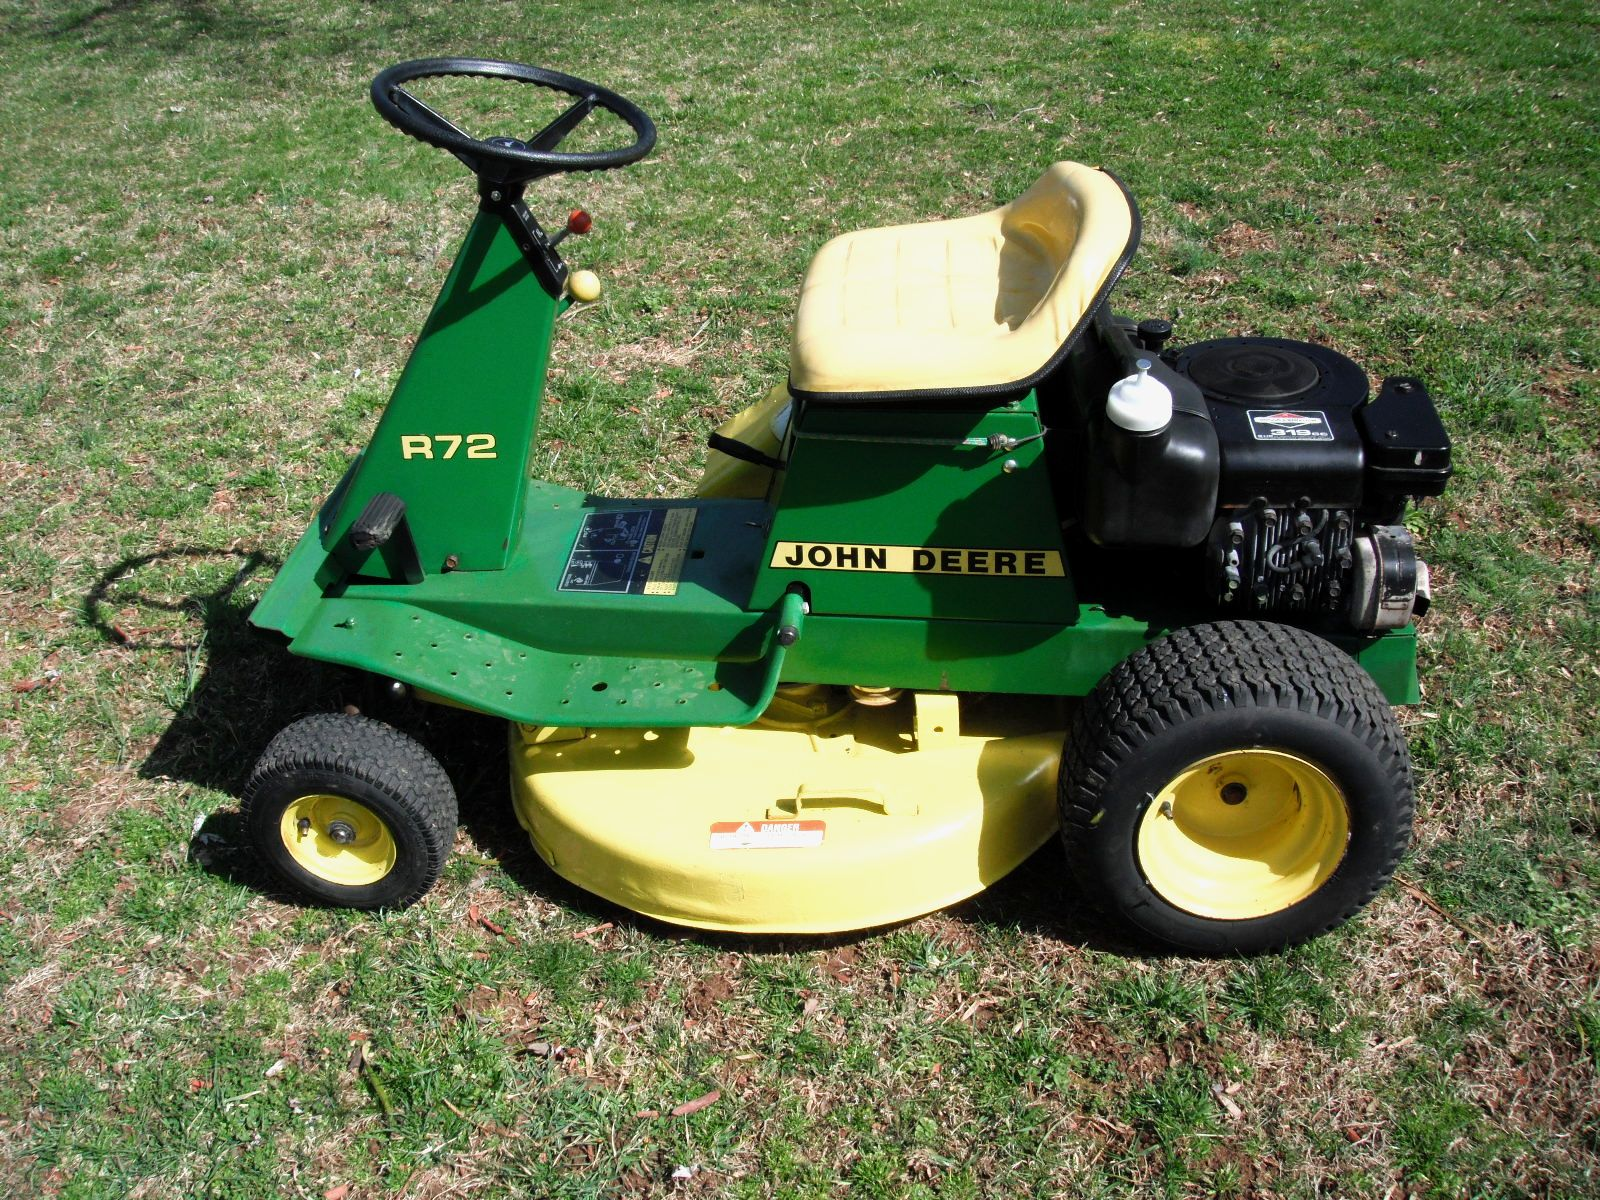 My John Deere 318 a Lifetime Dream comes True